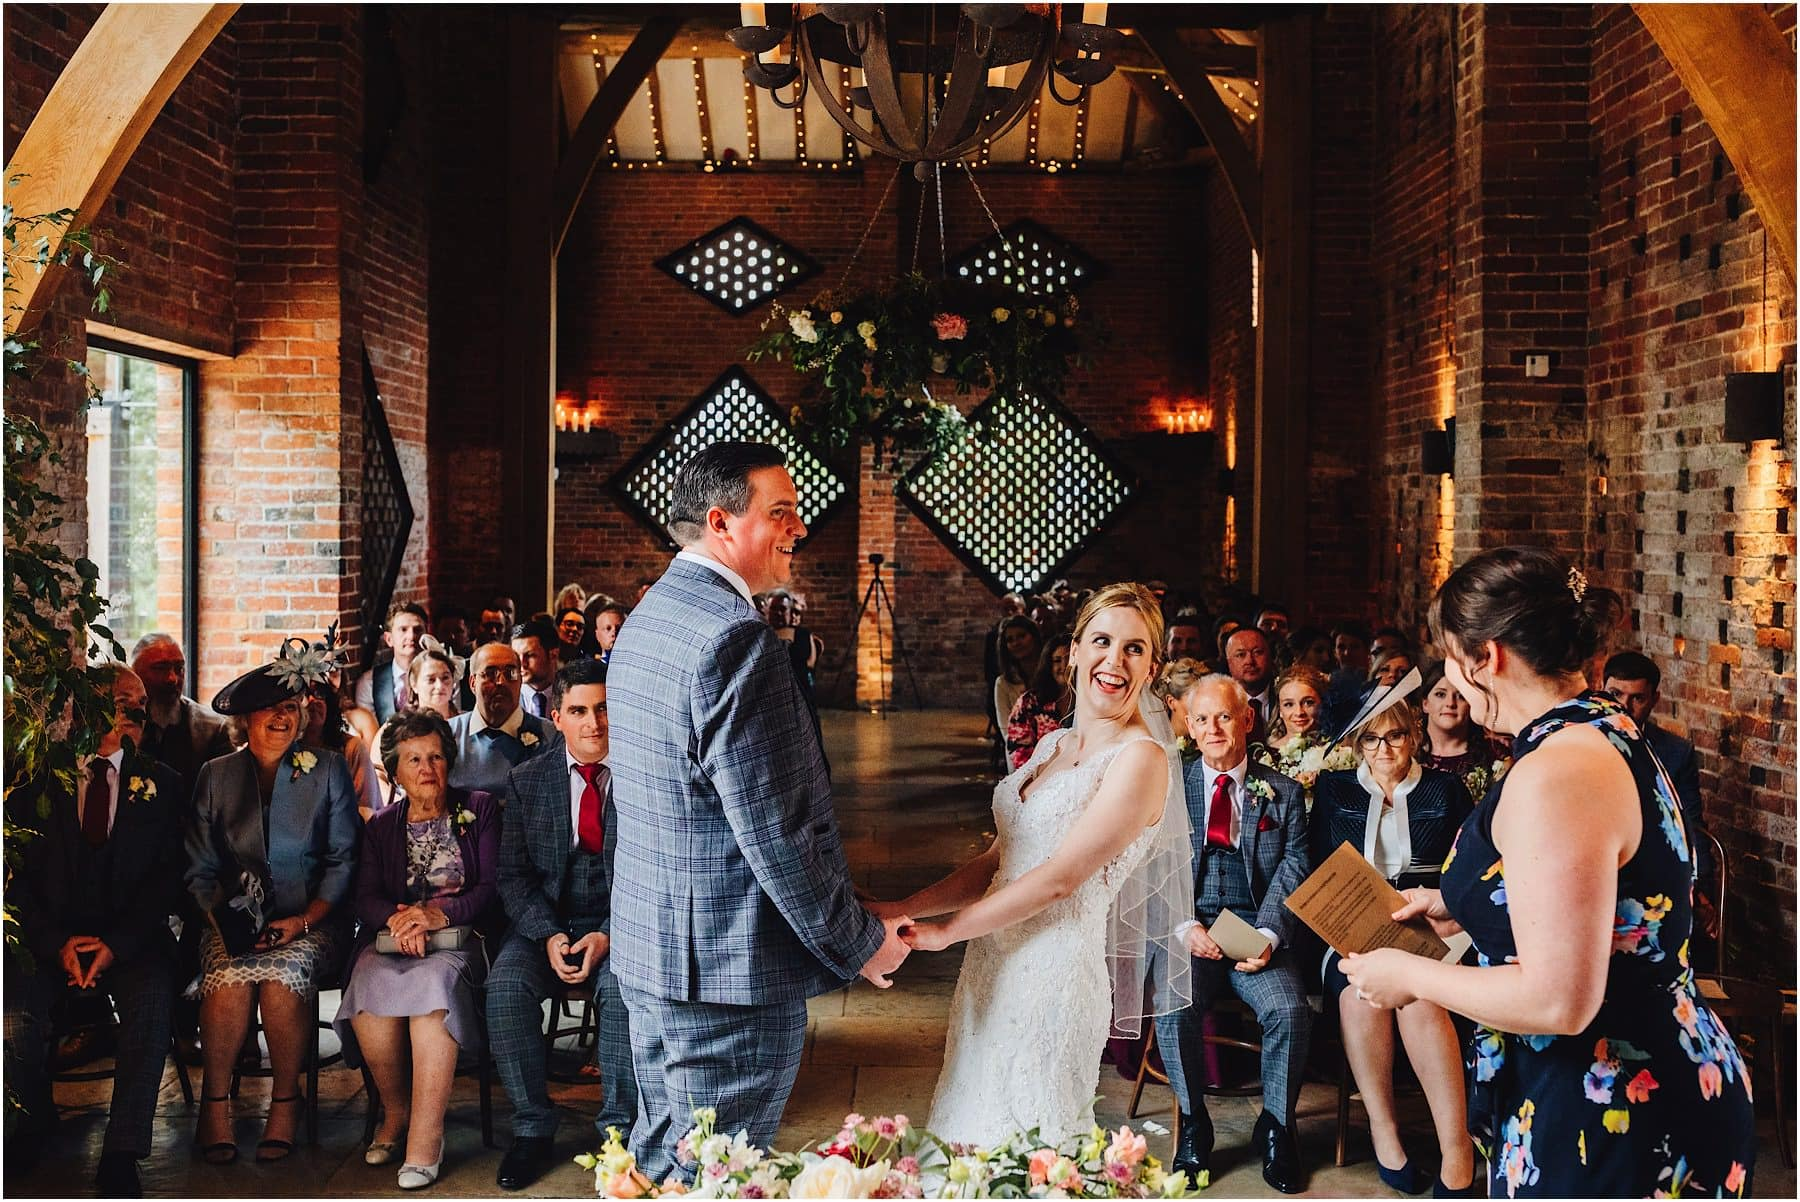 civil ceremony at Shustoke barns